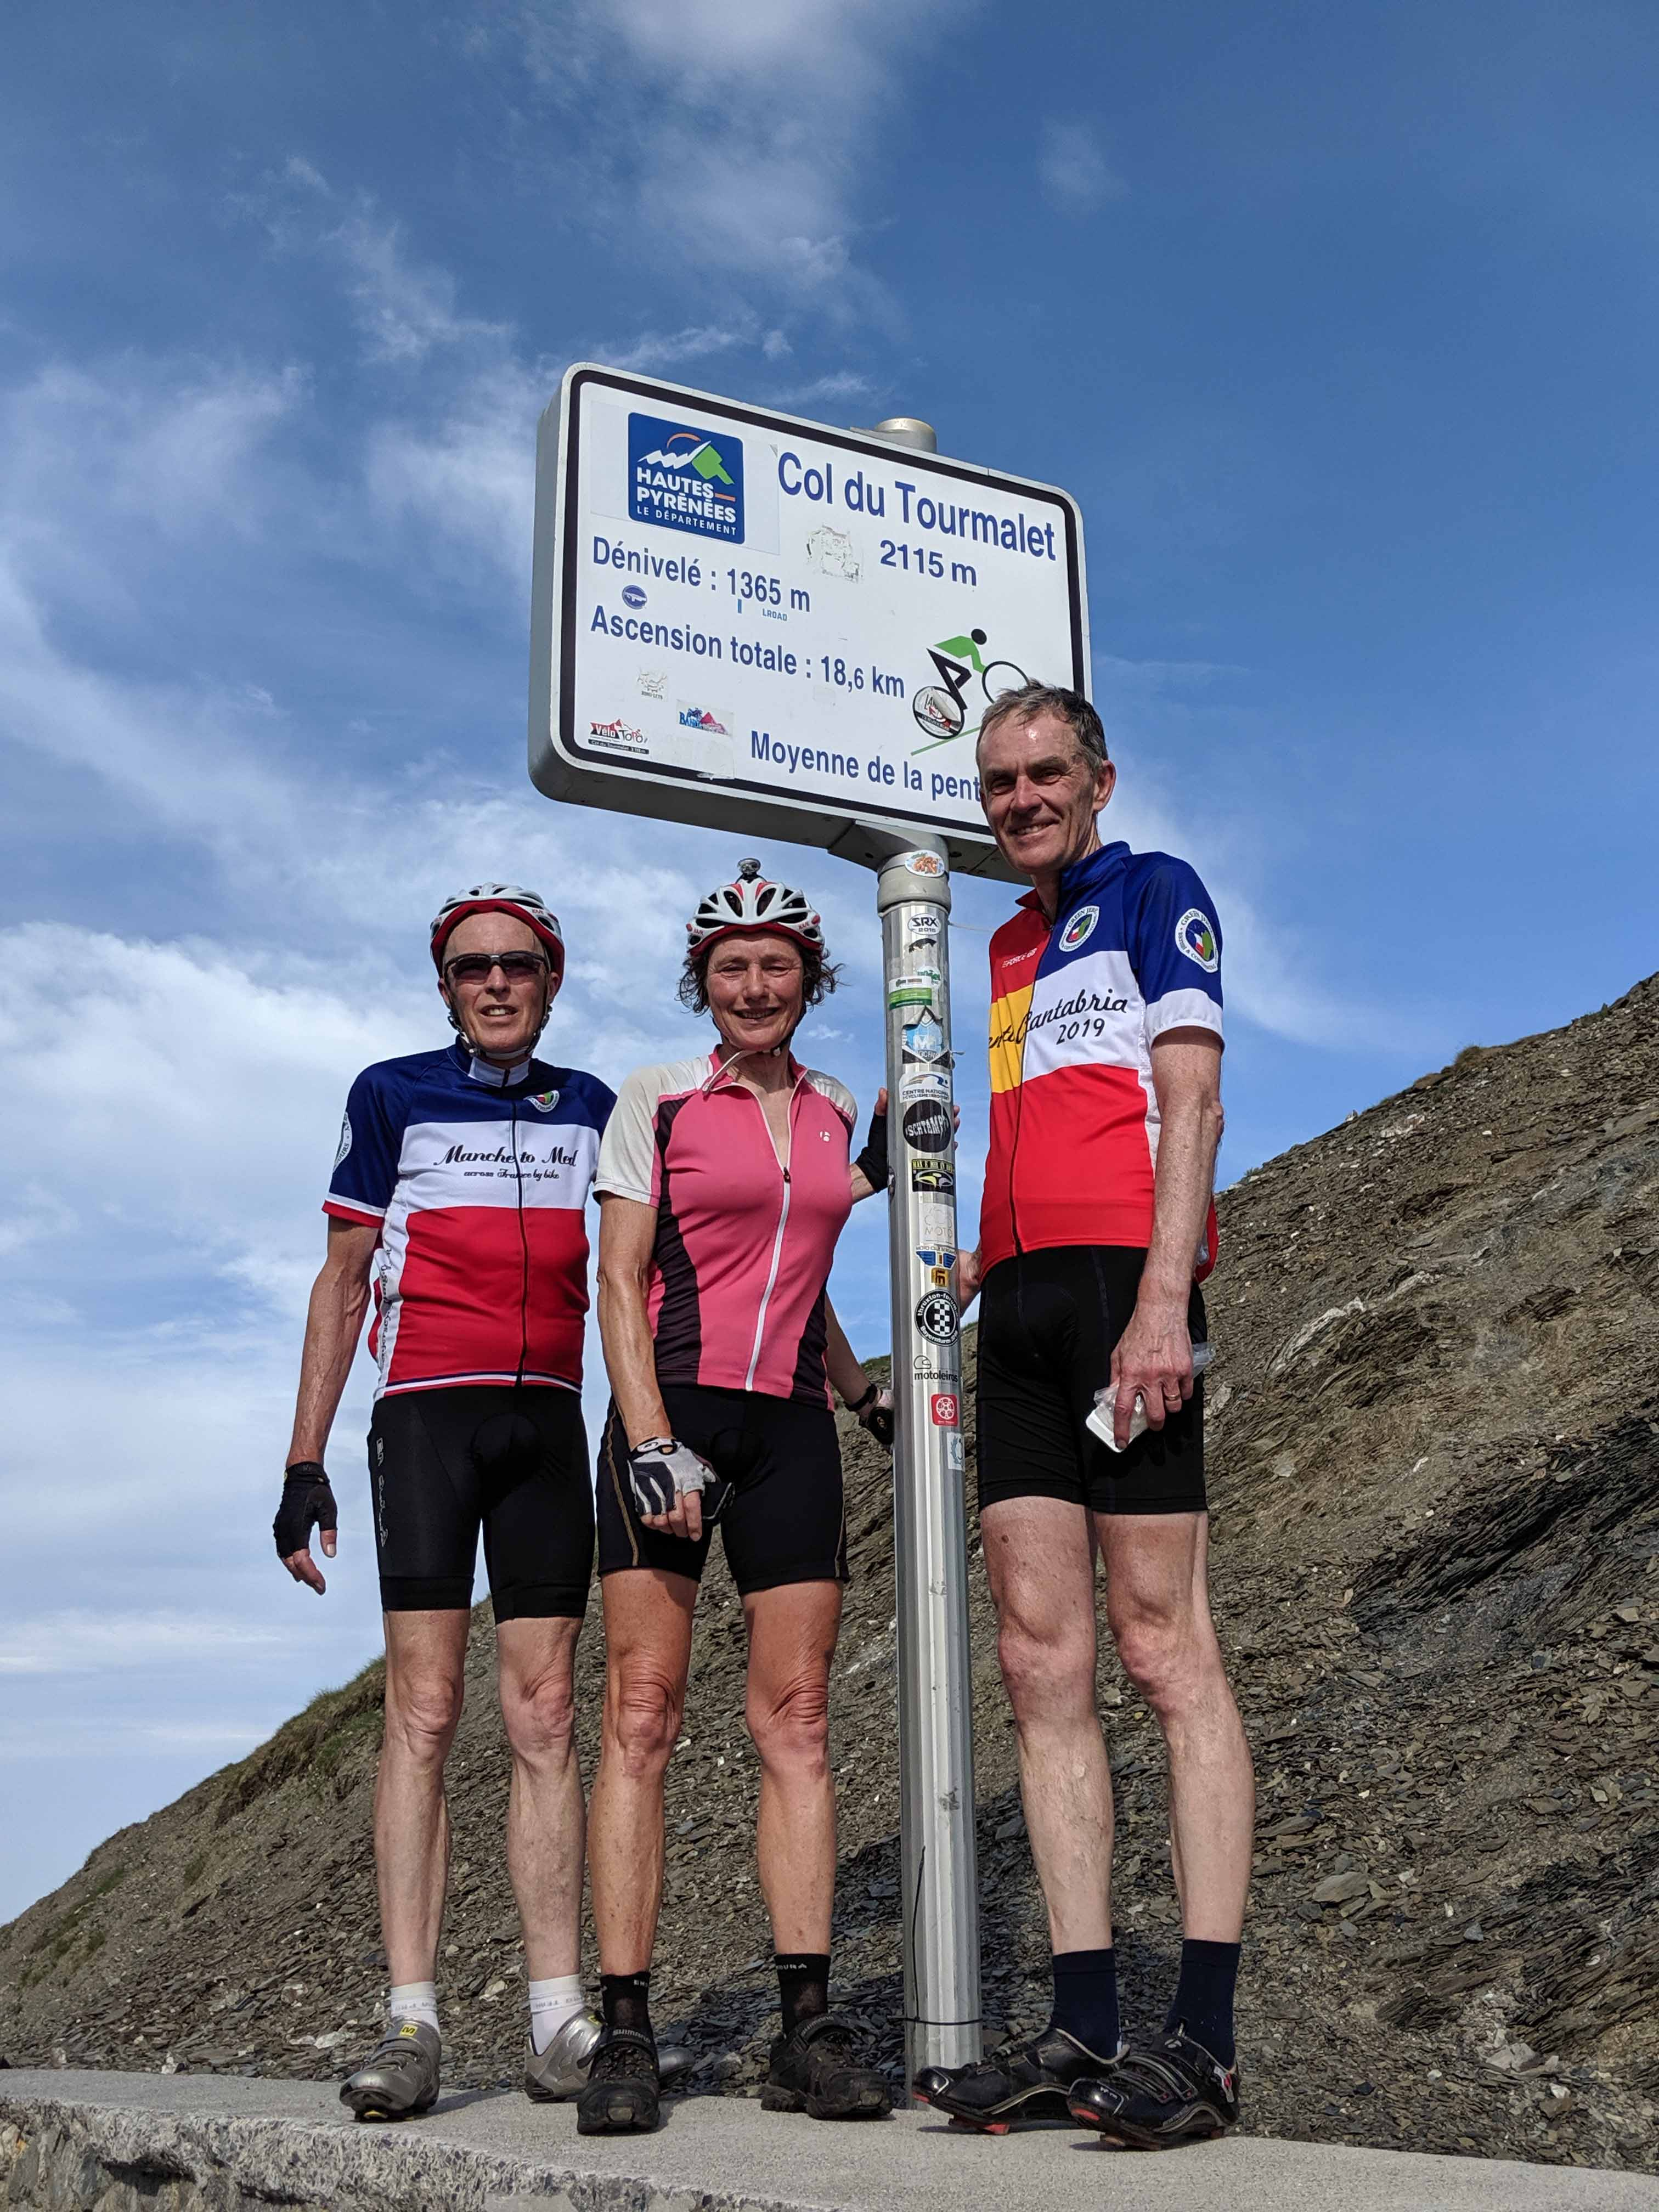 The Col du Tourmalet awaits for those who fancy it!